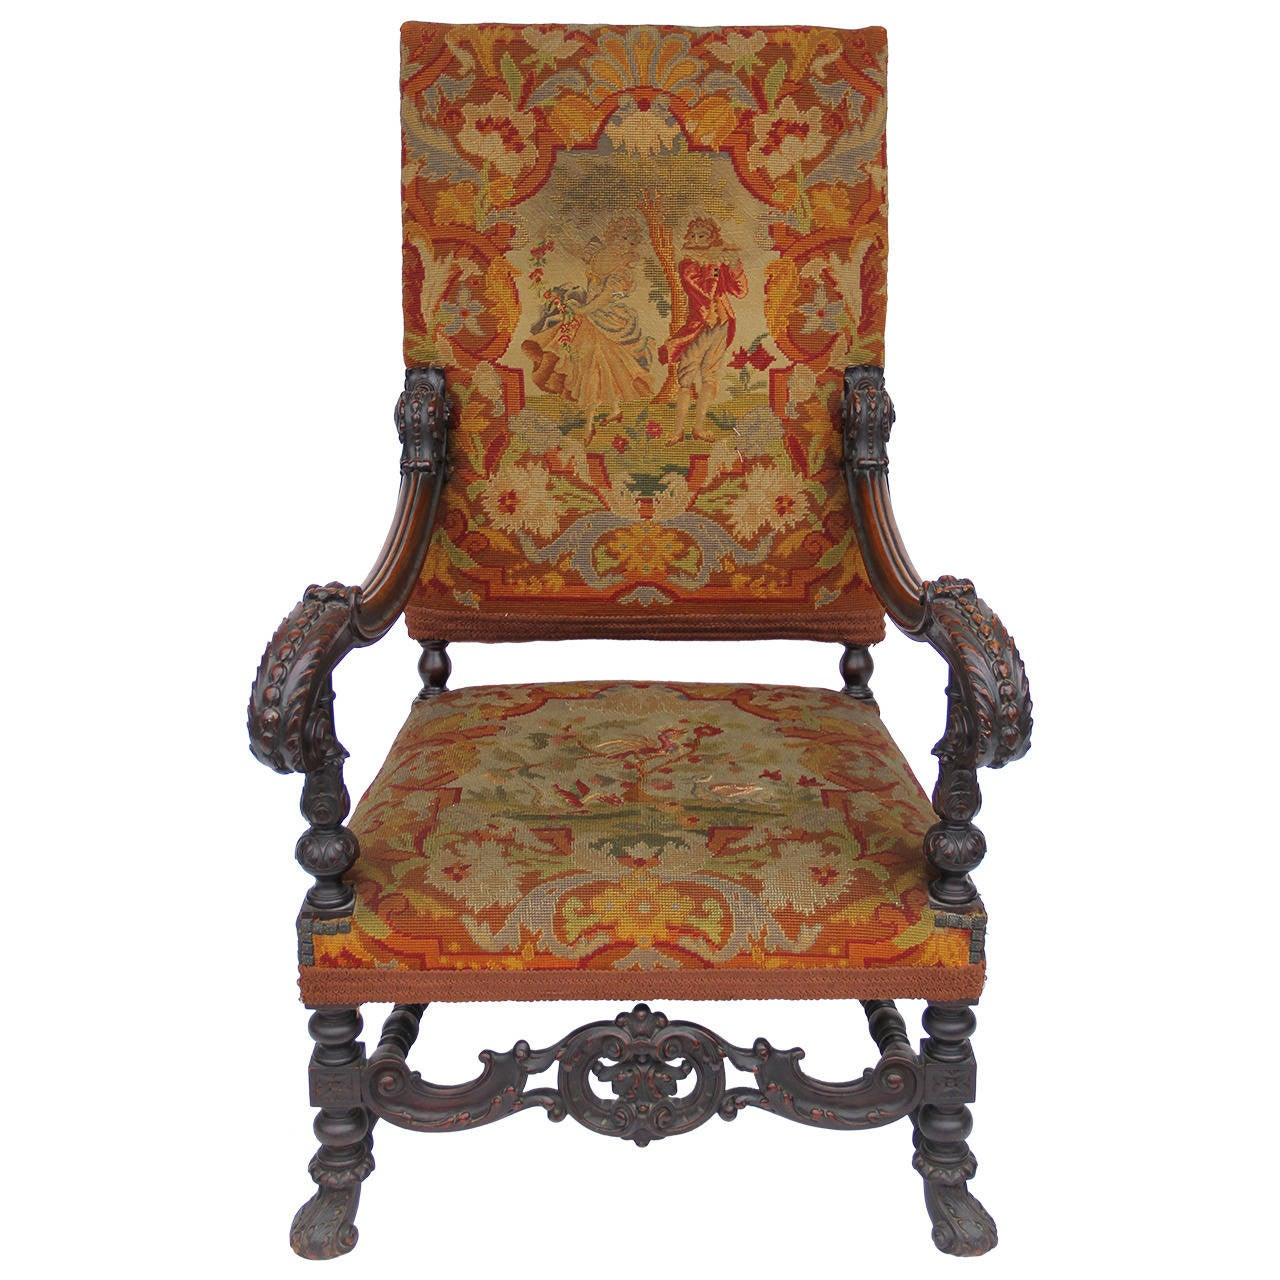 antique louis xiv style carved fauteuil high back armchair with needlepoint at 1stdibs. Black Bedroom Furniture Sets. Home Design Ideas